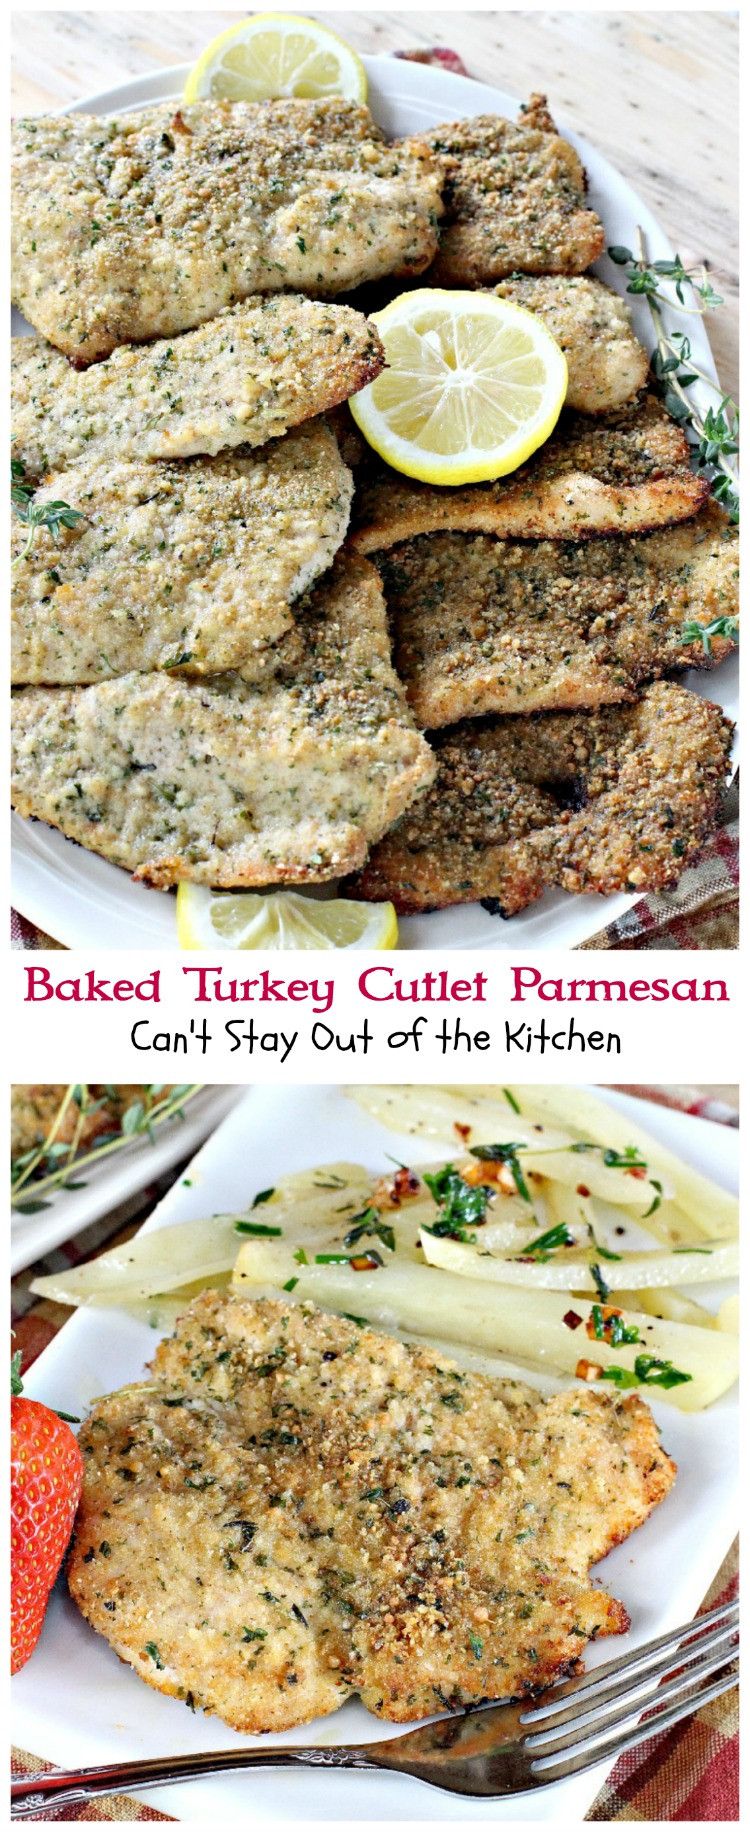 Baked Turkey Recipes For Thanksgiving  Baked Turkey Cutlet Parmesan Can t Stay Out of the Kitchen